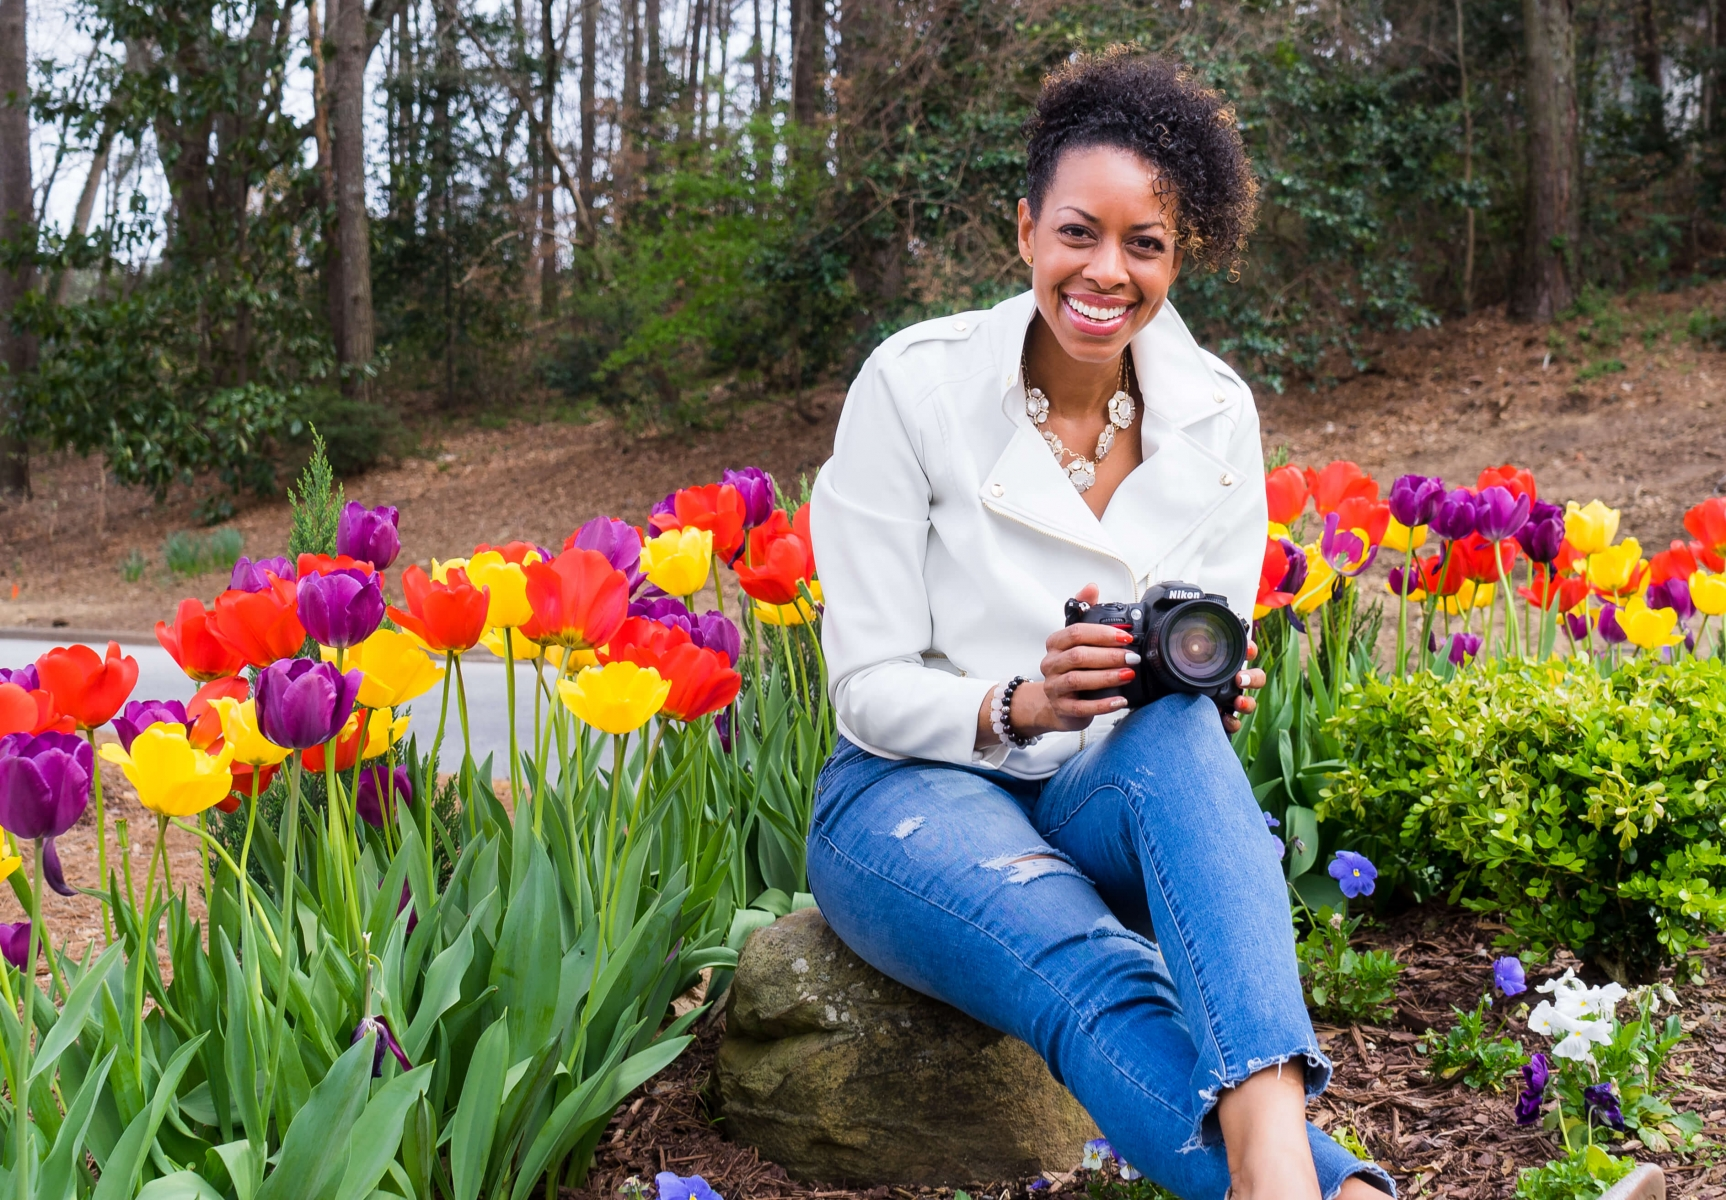 Headshot-Branding-Session-with-beautiful-black-lady-in-outdoor-photo-session-Rock-At-First-Sight-by-JM